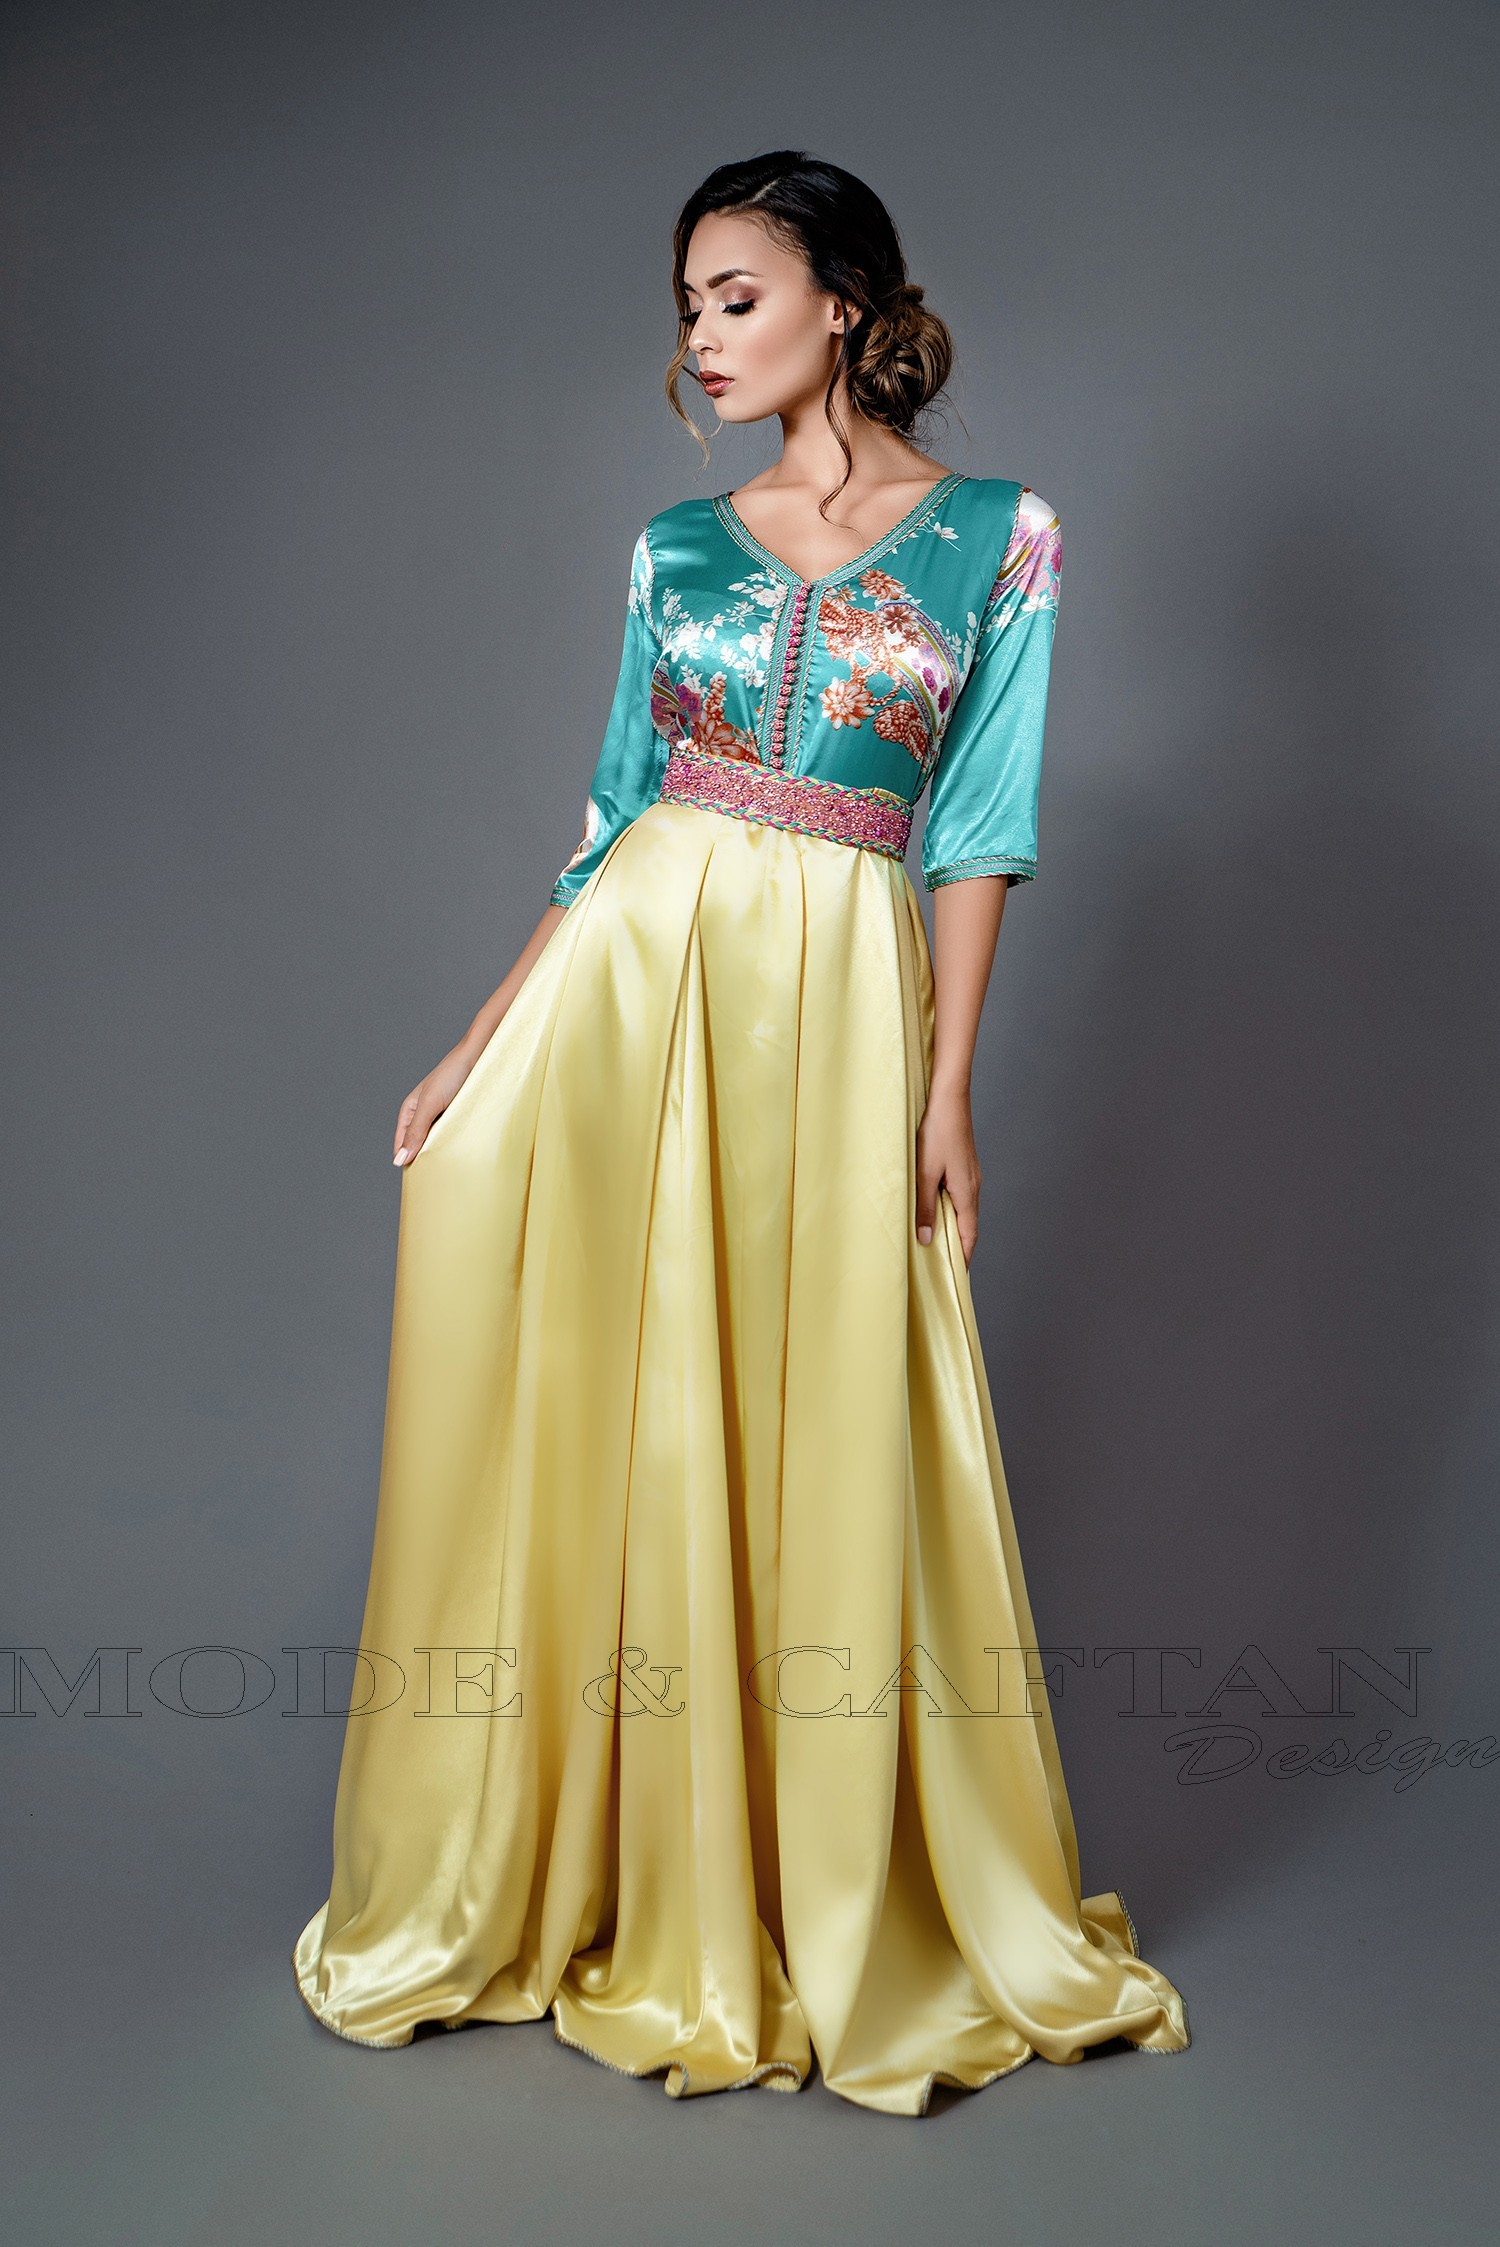 A Selection Of Designer Kaftan Online Fashion 2020 Made In Morrocco